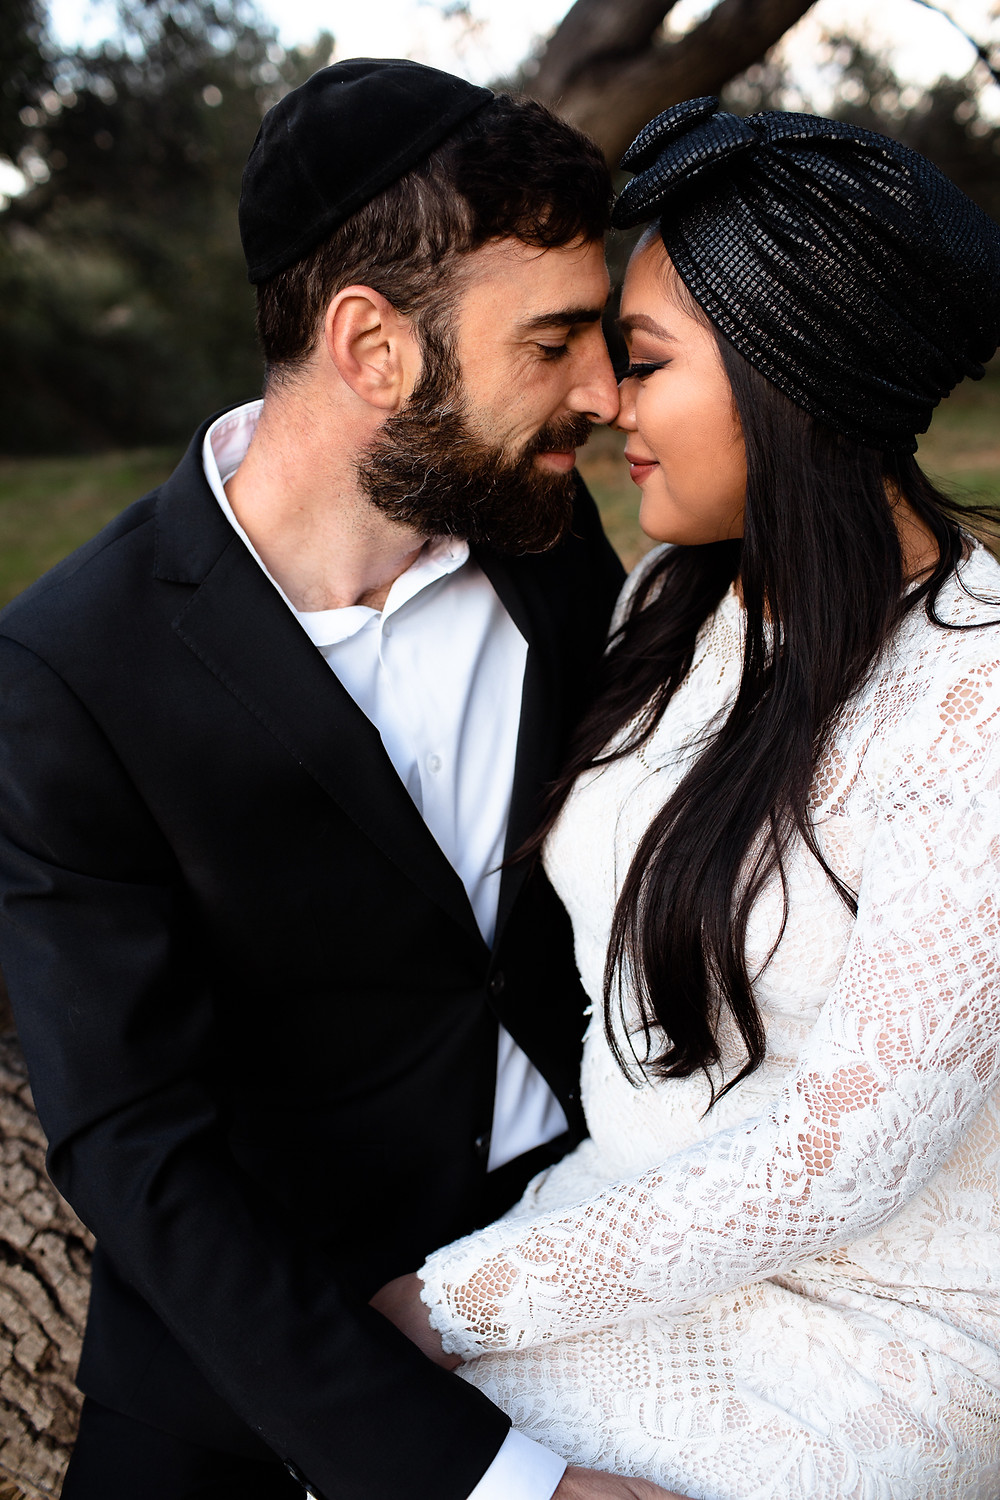 jewish bride and groom nuzzling noses